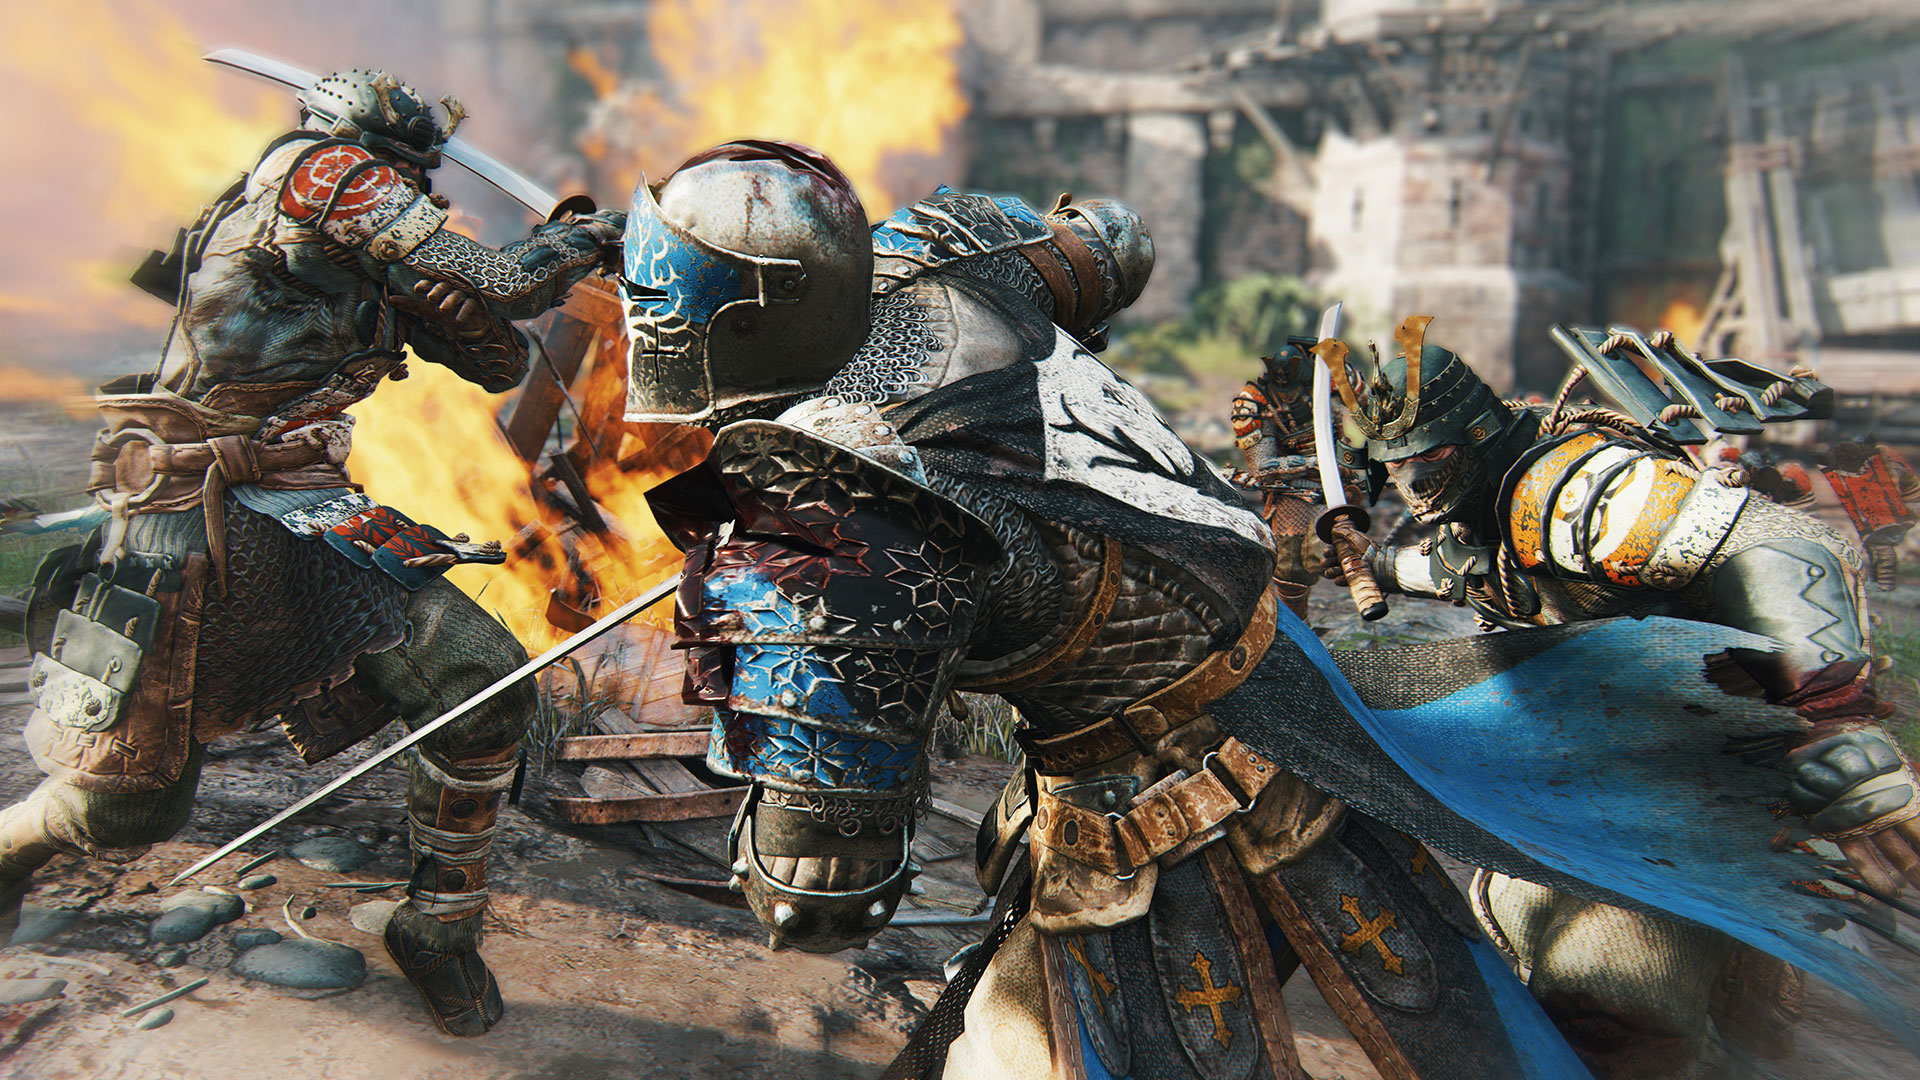 nat games for honor 2